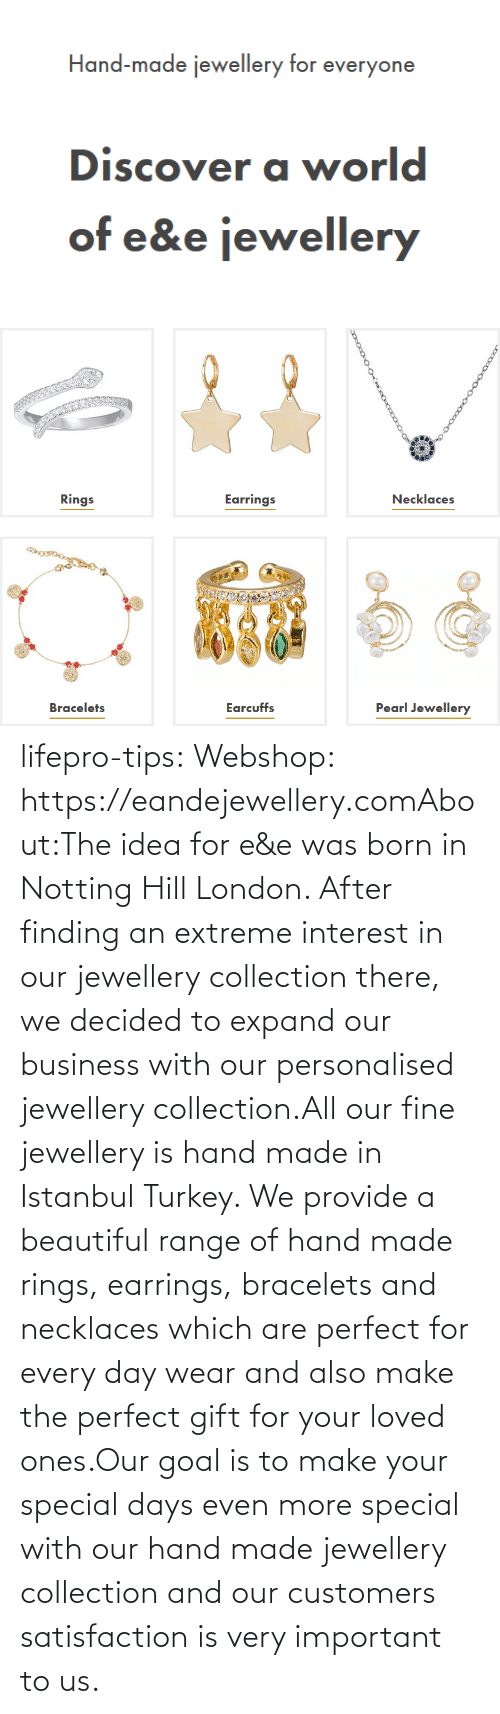 Beautiful, Tumblr, and Blog: lifepro-tips: Webshop: https://eandejewellery.comAbout:The idea for e&e was born in Notting Hill London. After  finding an extreme interest in our jewellery collection there, we  decided to expand our business with our personalised jewellery  collection.All our fine jewellery is hand made in Istanbul Turkey. We  provide a beautiful range of hand made rings, earrings, bracelets and  necklaces which are perfect for every day wear and also make the perfect  gift for your loved ones.Our goal is to make your special days even more special with  our hand made jewellery collection and our customers satisfaction is  very important to us.